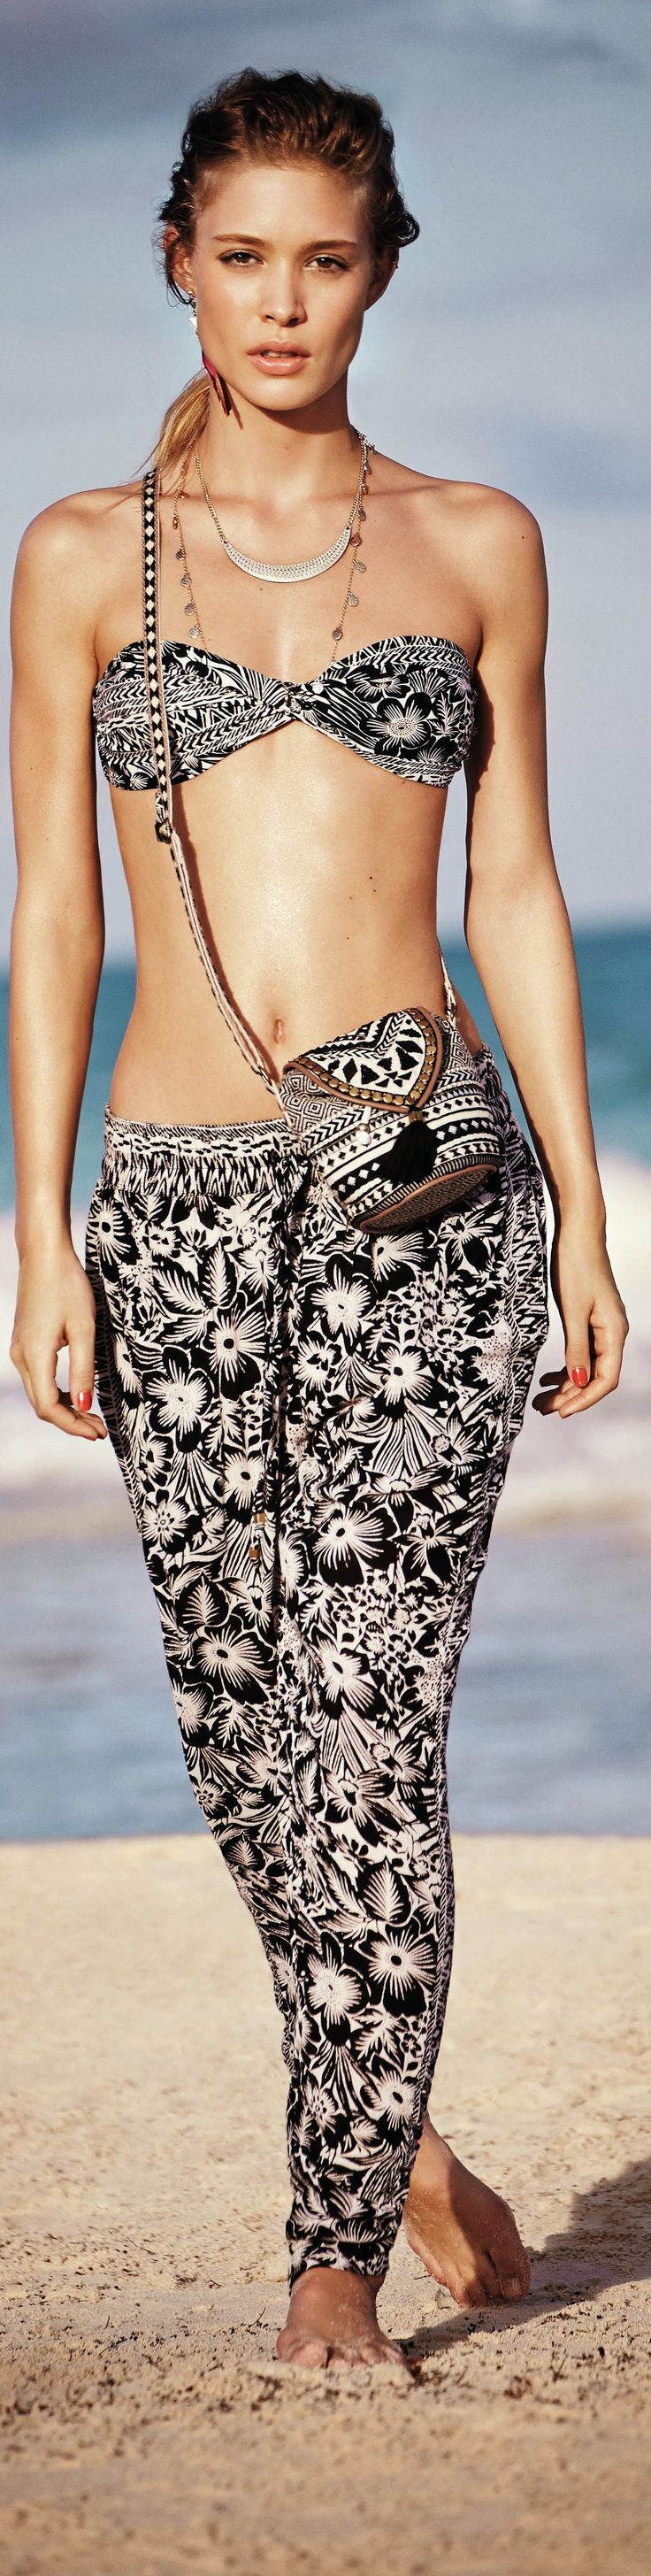 Dress up your boyfriend - Beach Pants If Not Enough Coverage You Can Always Throw On One Of Your Boyfriend